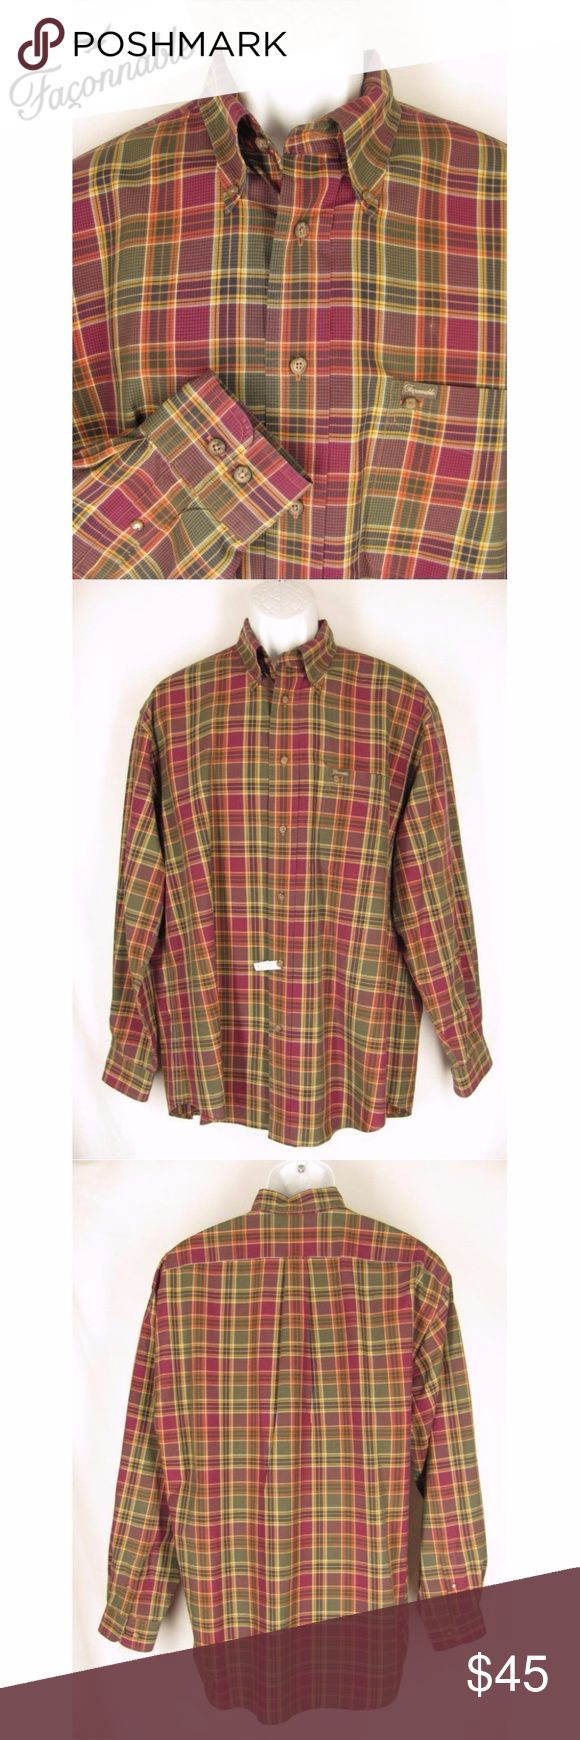 """Faconnable Shirt L Plaid Button Down Collar Faconnable mens plaid shirt, size Large. This handsome shirt is a gold, olive green and burgundy plaid. It's 100% cotton and has a button front, button down collar and long sleeves. Faconnable engraved buttons and logo on the chest pocket. This shirt has a back yoke and pleat and a shirttail hem. Excellent, Gently Pre-Loved condition!  25"""" across chest 34 1/2"""" from top of garment to bottom of hem  10x14 170703-214-9 Faconnable Shirts Casual Button…"""